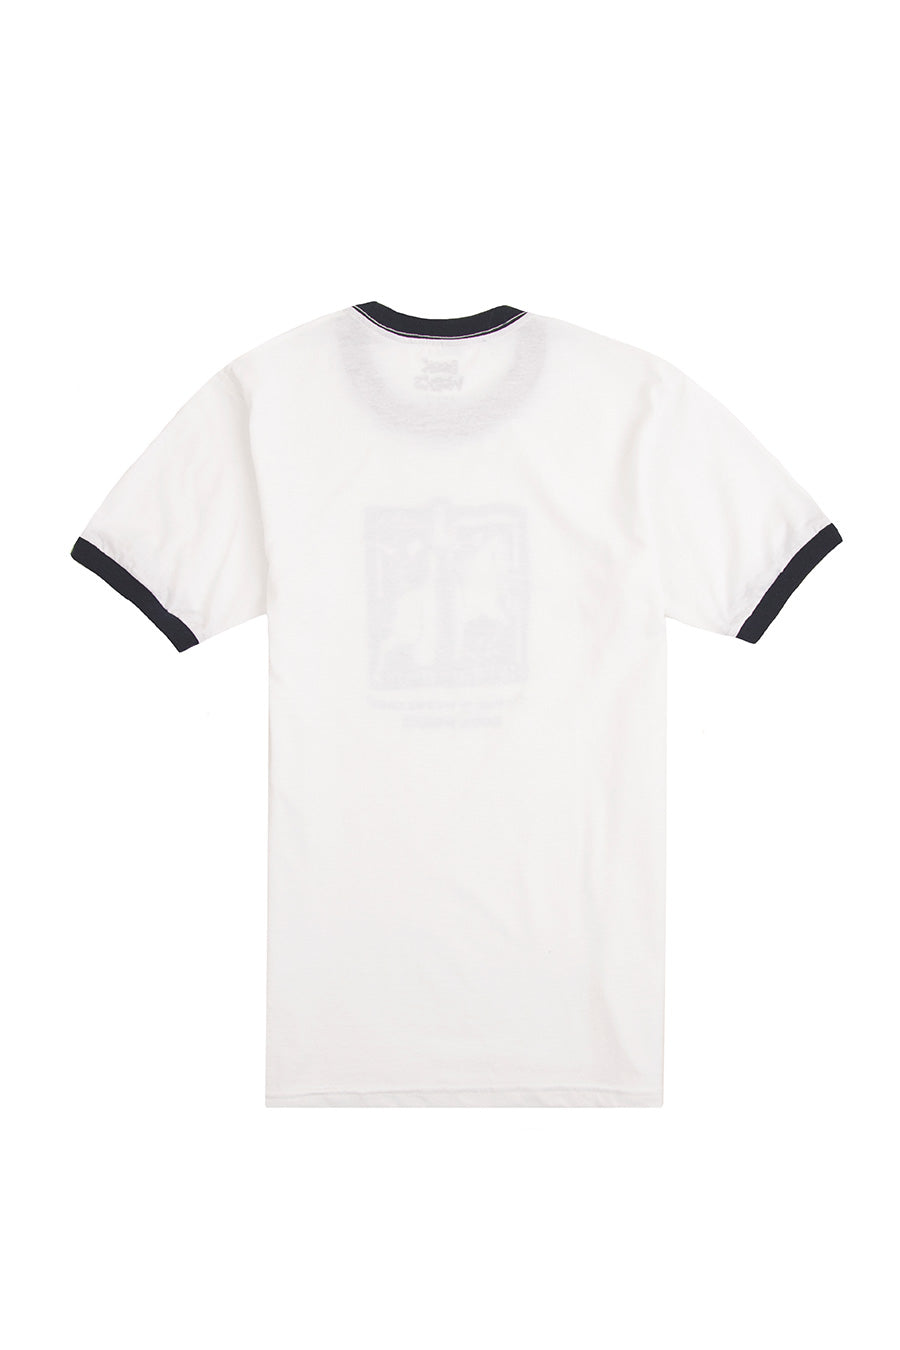 Book Works - White Lady Ringer Tee | 1032 SPACE